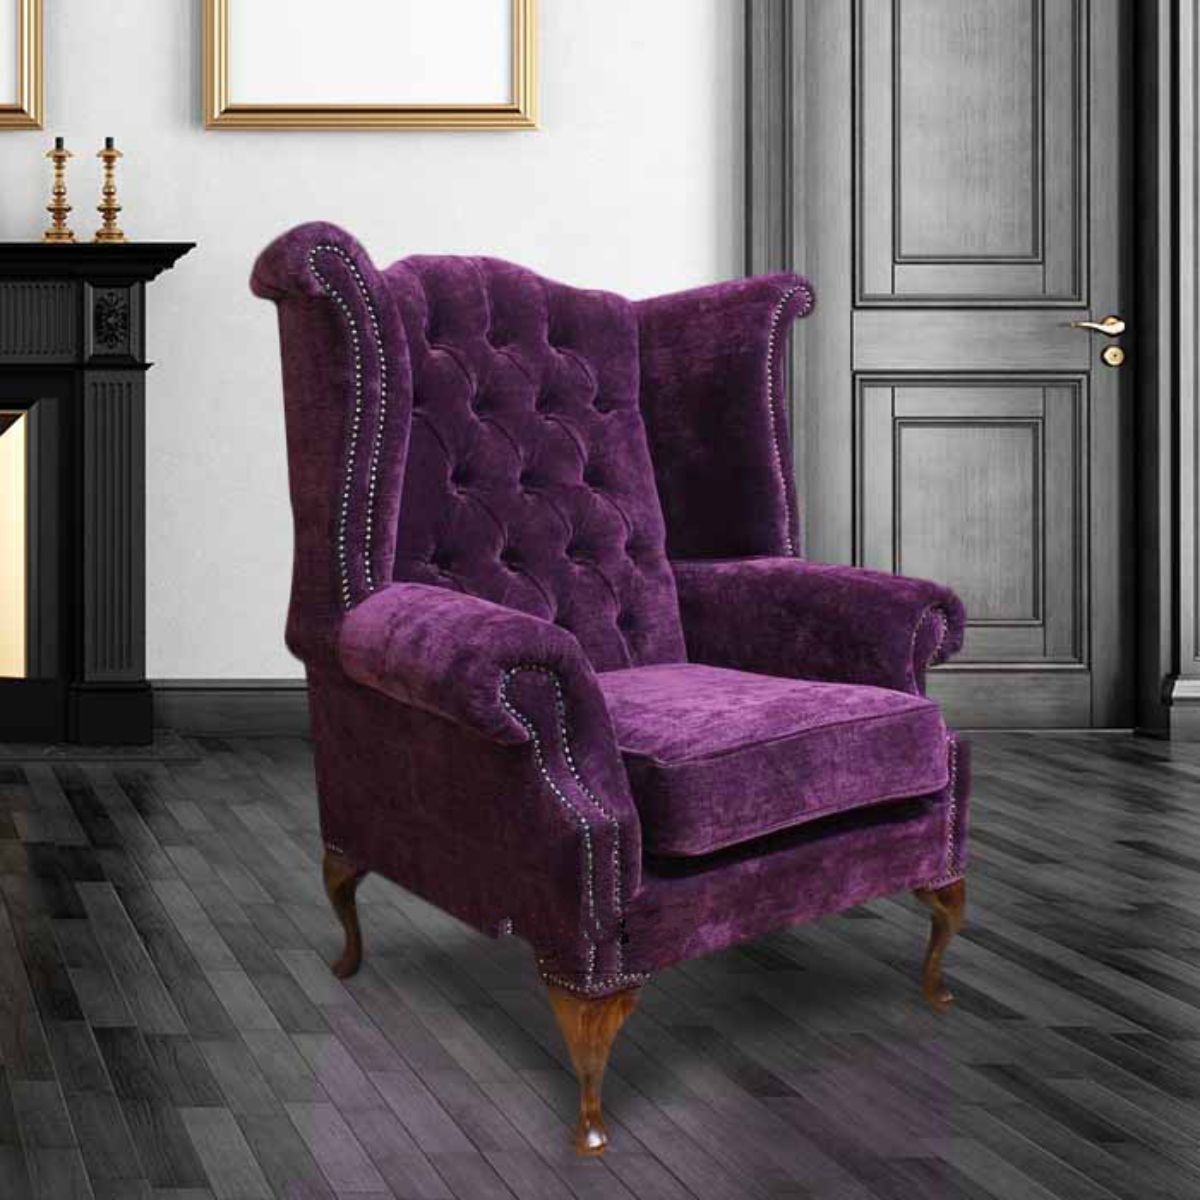 Purple chesterfield queen anne wing chair designersofas4u - High back wing chairs for living room ...